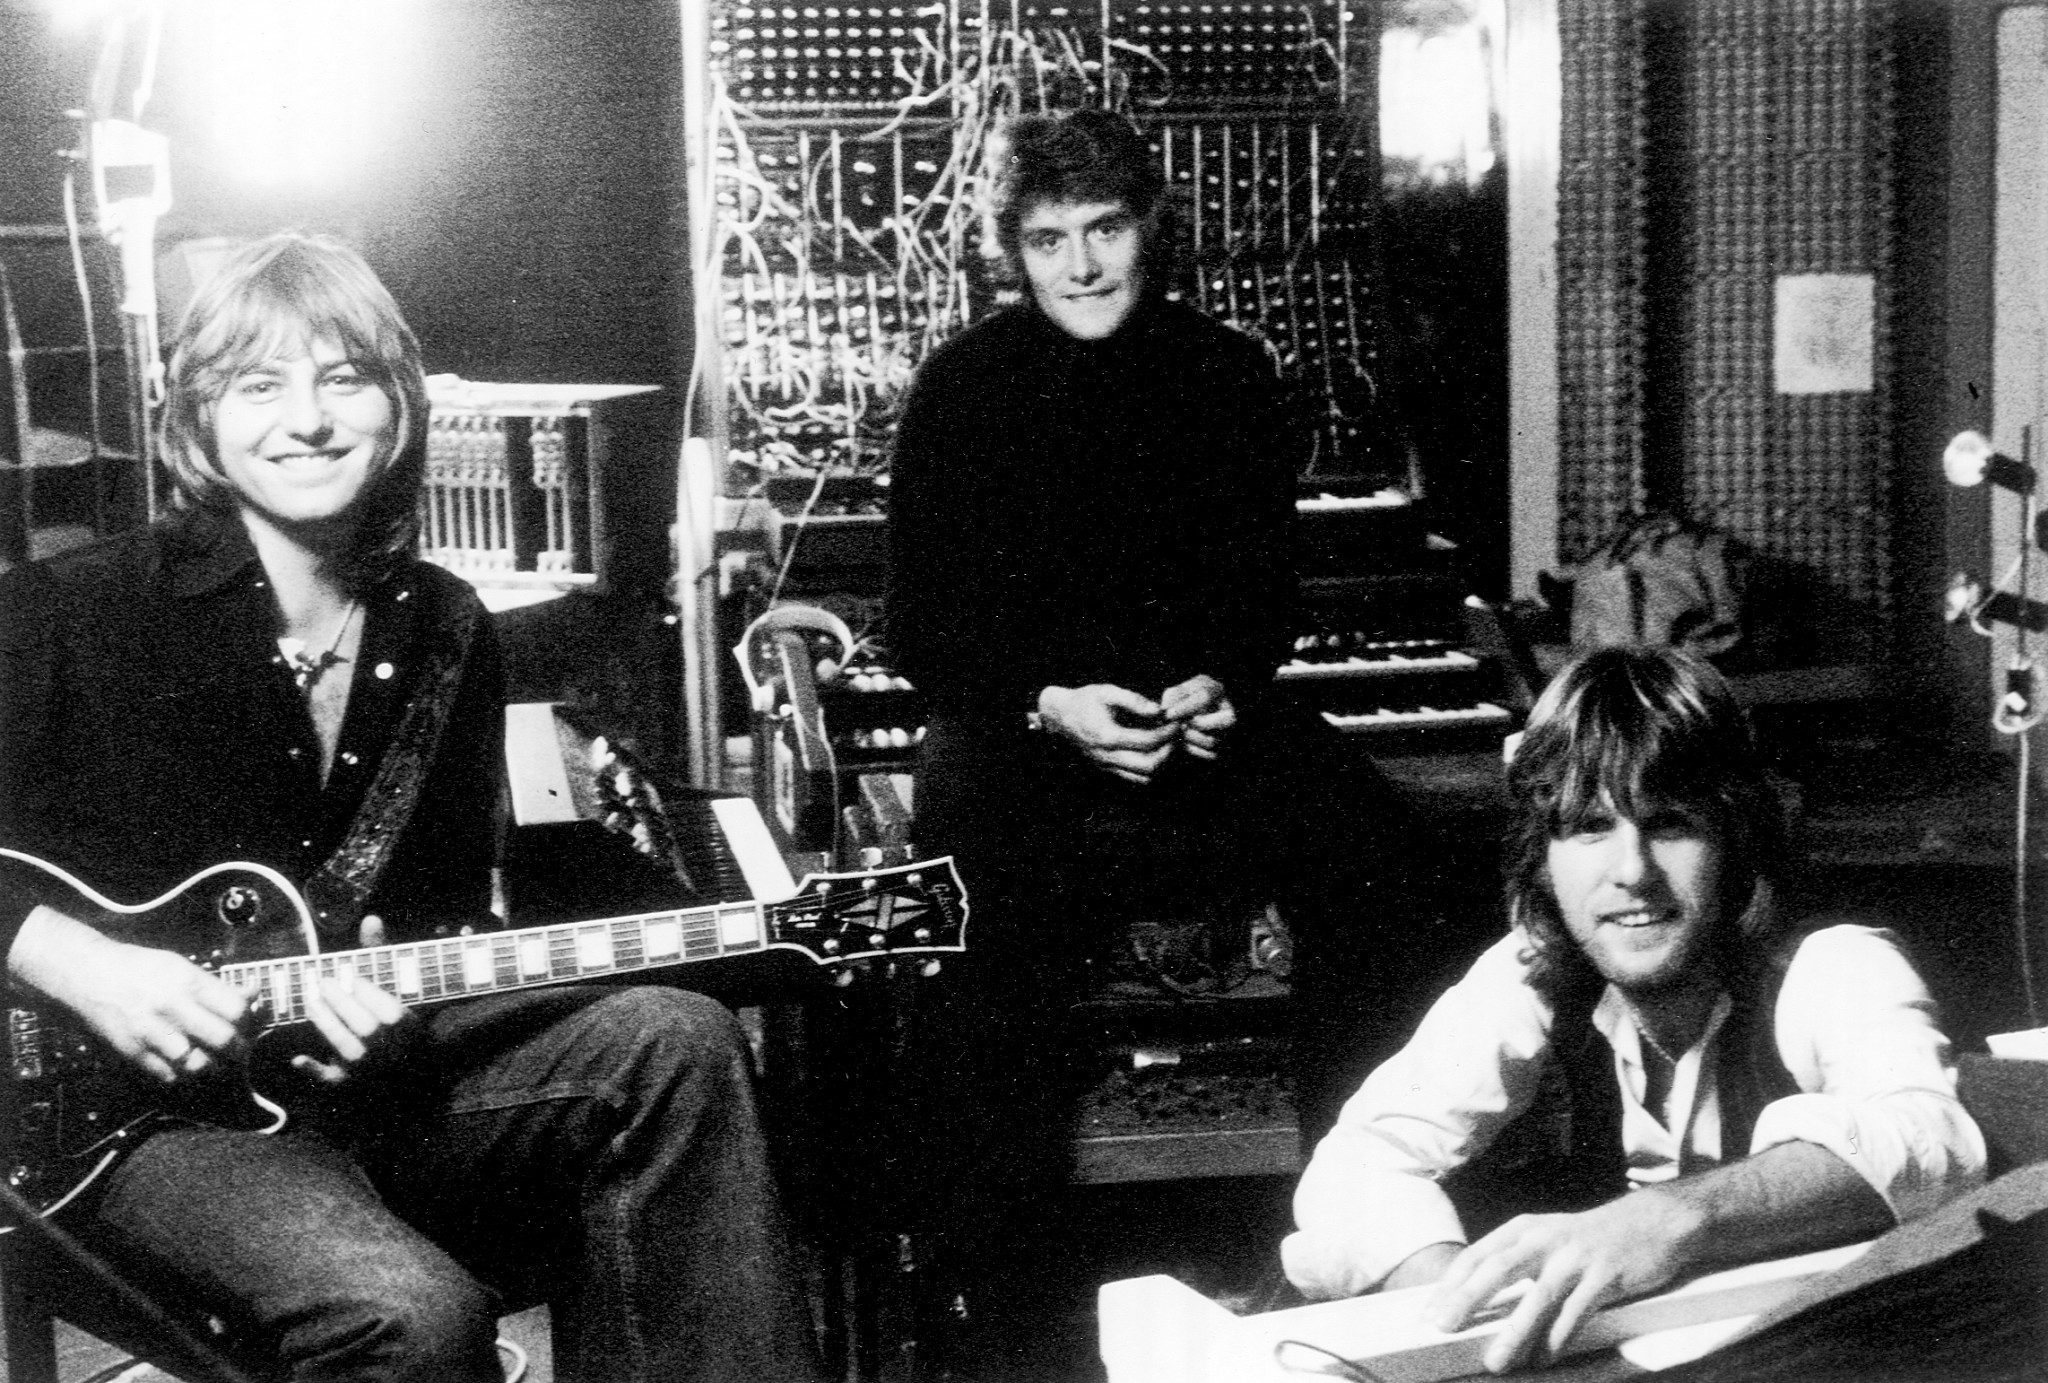 ELP-VINTAGE-BW-IN-STUDIO-_-COURTESY-ELP-MANTICORE